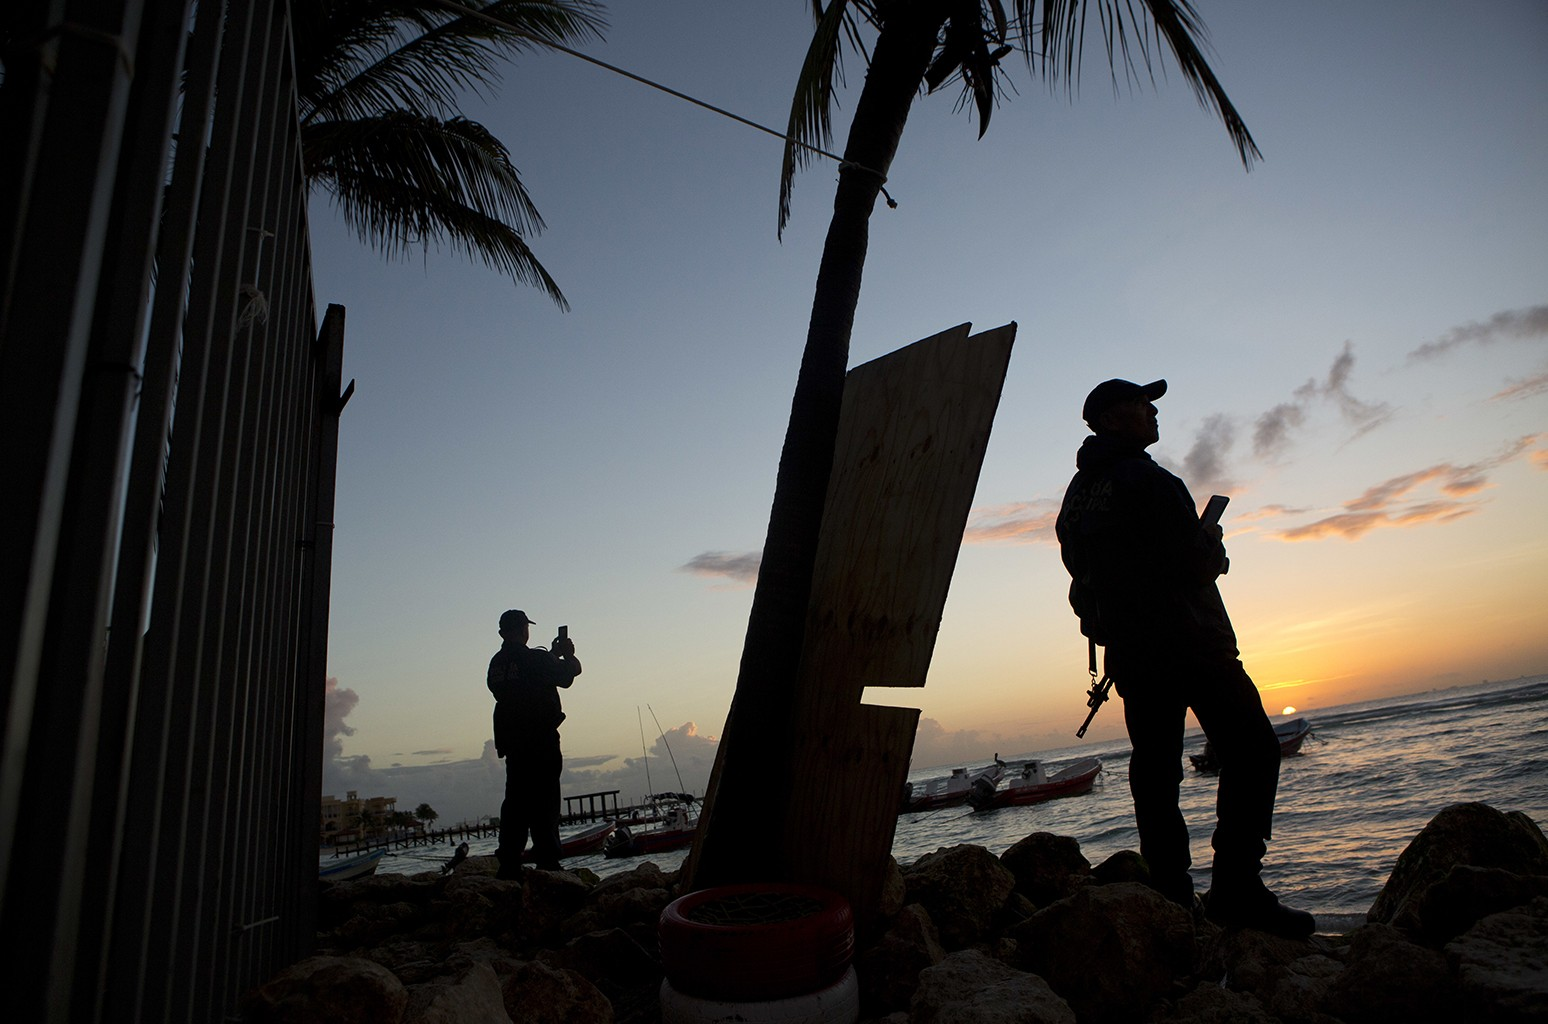 Municipal police watch the sunrise as they stand guard on the beach in front of the Blue Parrot club, a day after a deadly early morning shooting, in Playa del Carmen, Mexico on Jan. 17, 2017.